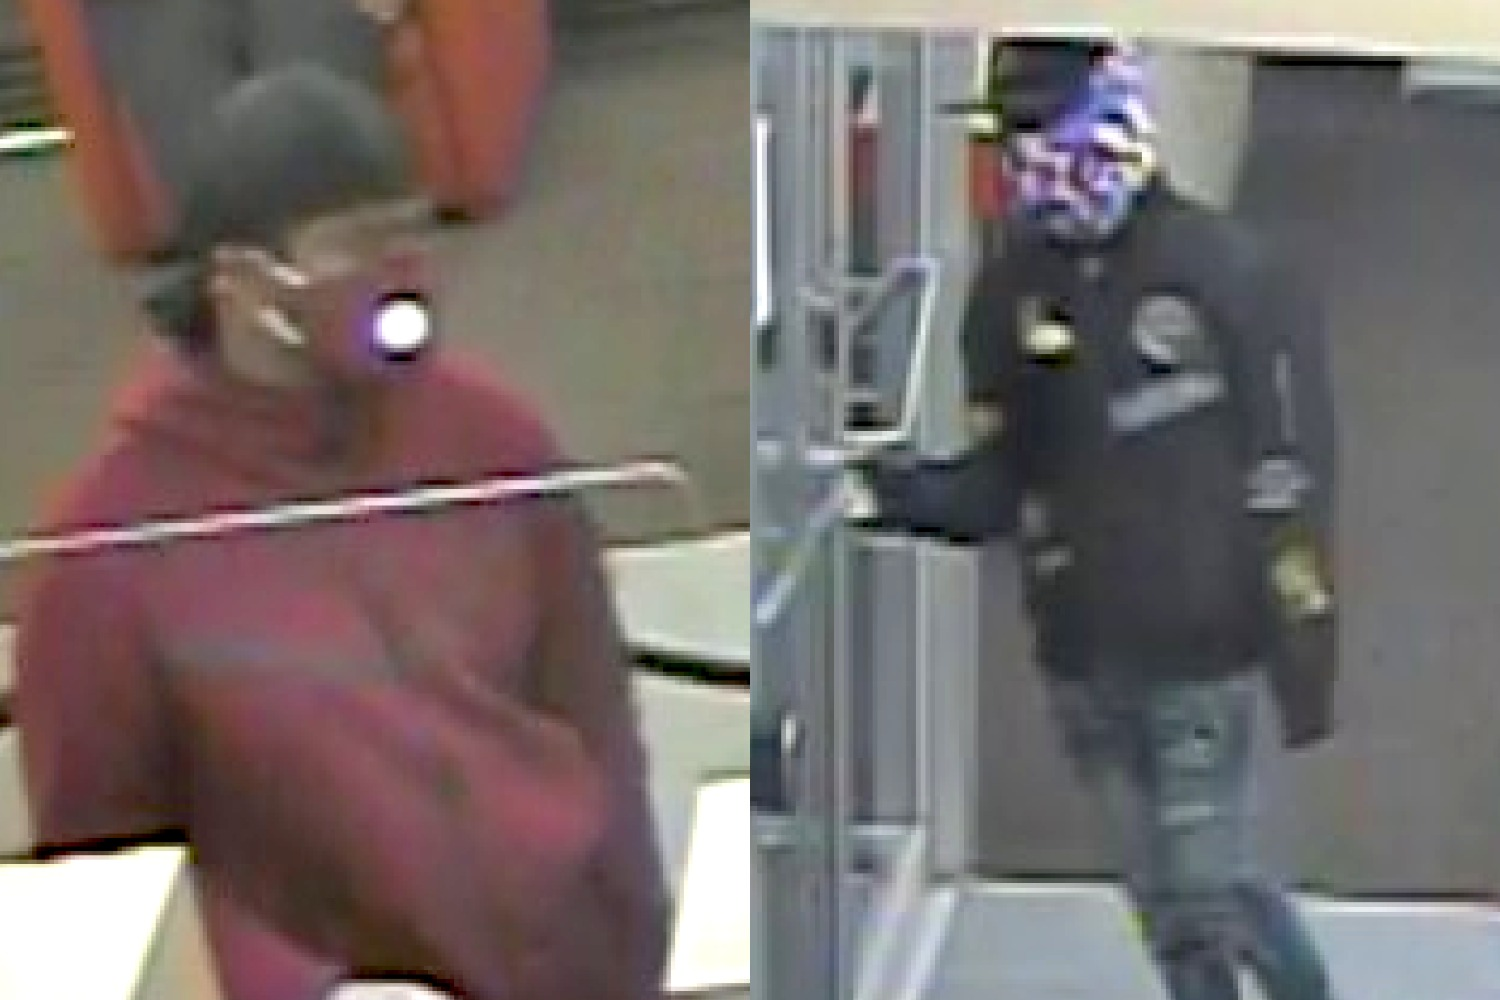 The FBI says these men are wanted for robbing a BMO Harris Bank branch Oct. 20, 2020, at 5960 W. Irving Park Rd.